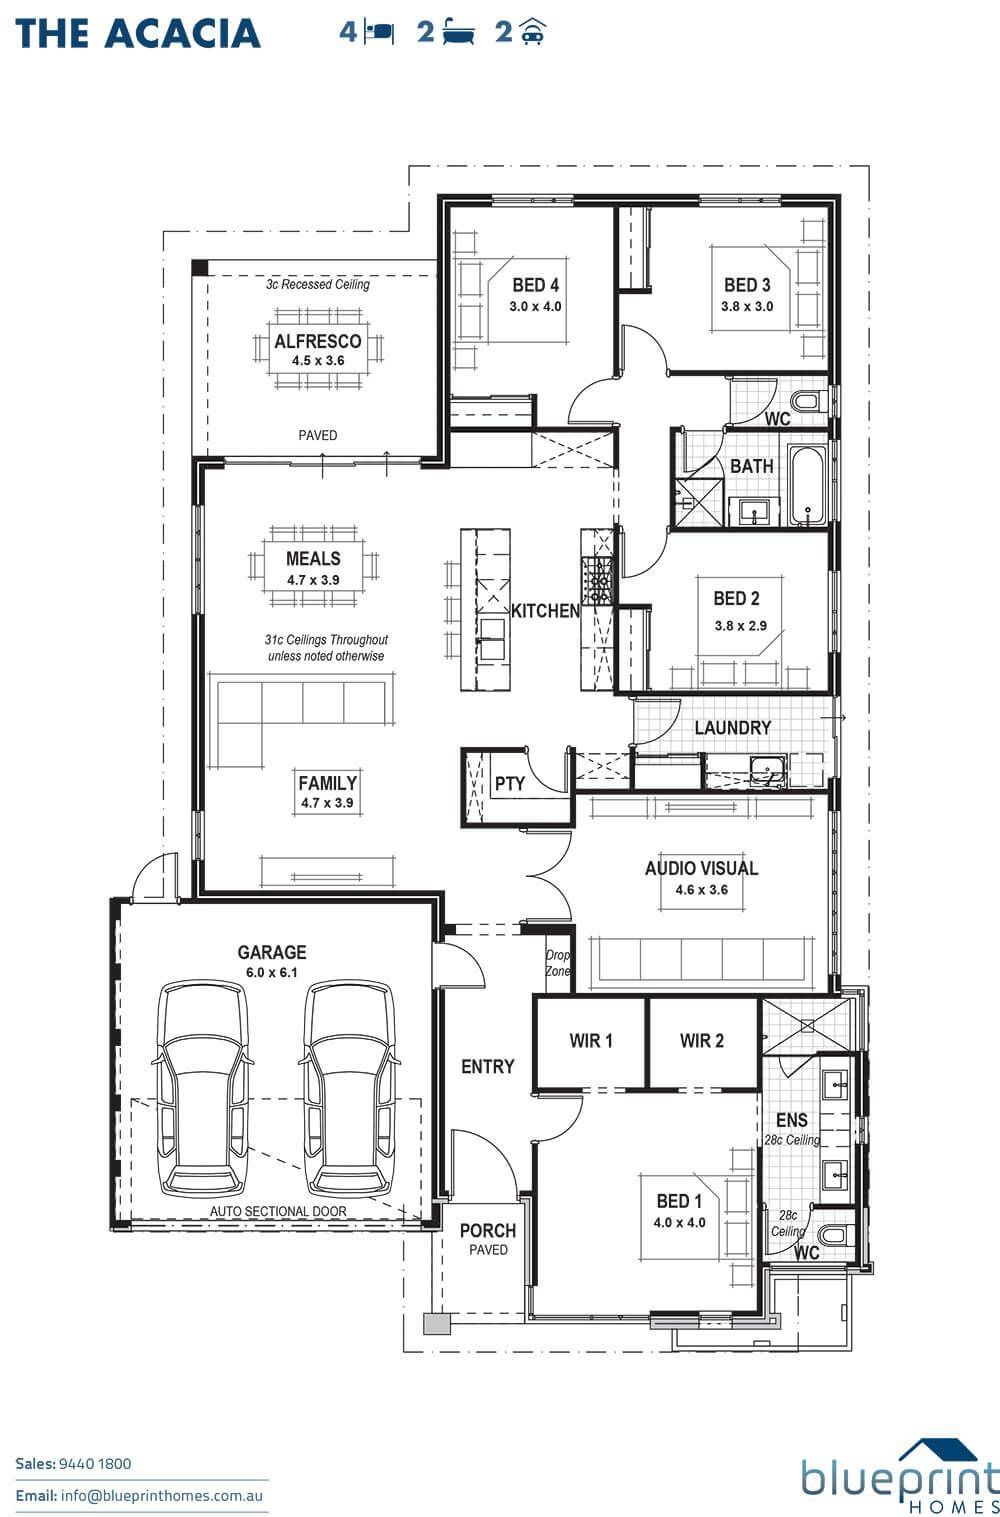 The Acacia Perth Home Design Blueprint Homes House Plans Australia House Blueprints Open House Plans